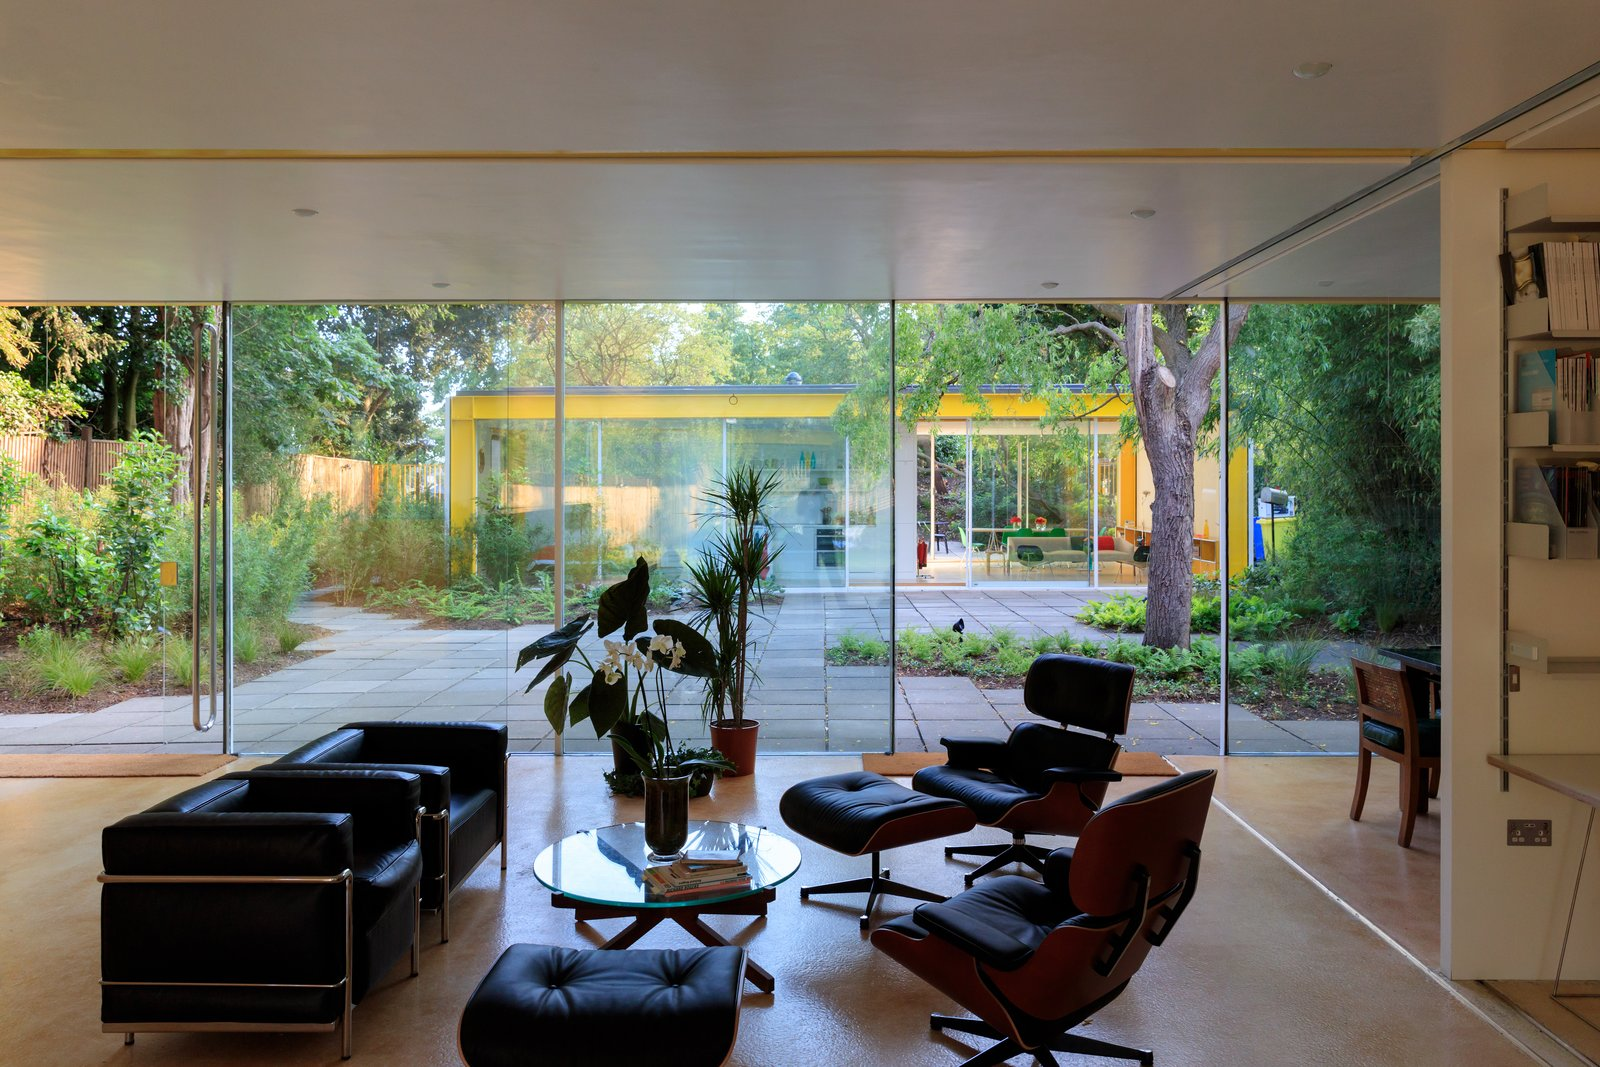 Living Room, Chair, Coffee Tables, and Recliner  Photo 13 of 14 in Fully Renovated, Wimbledon House by Richard Rogers Hosts New Architecture Fellows in London